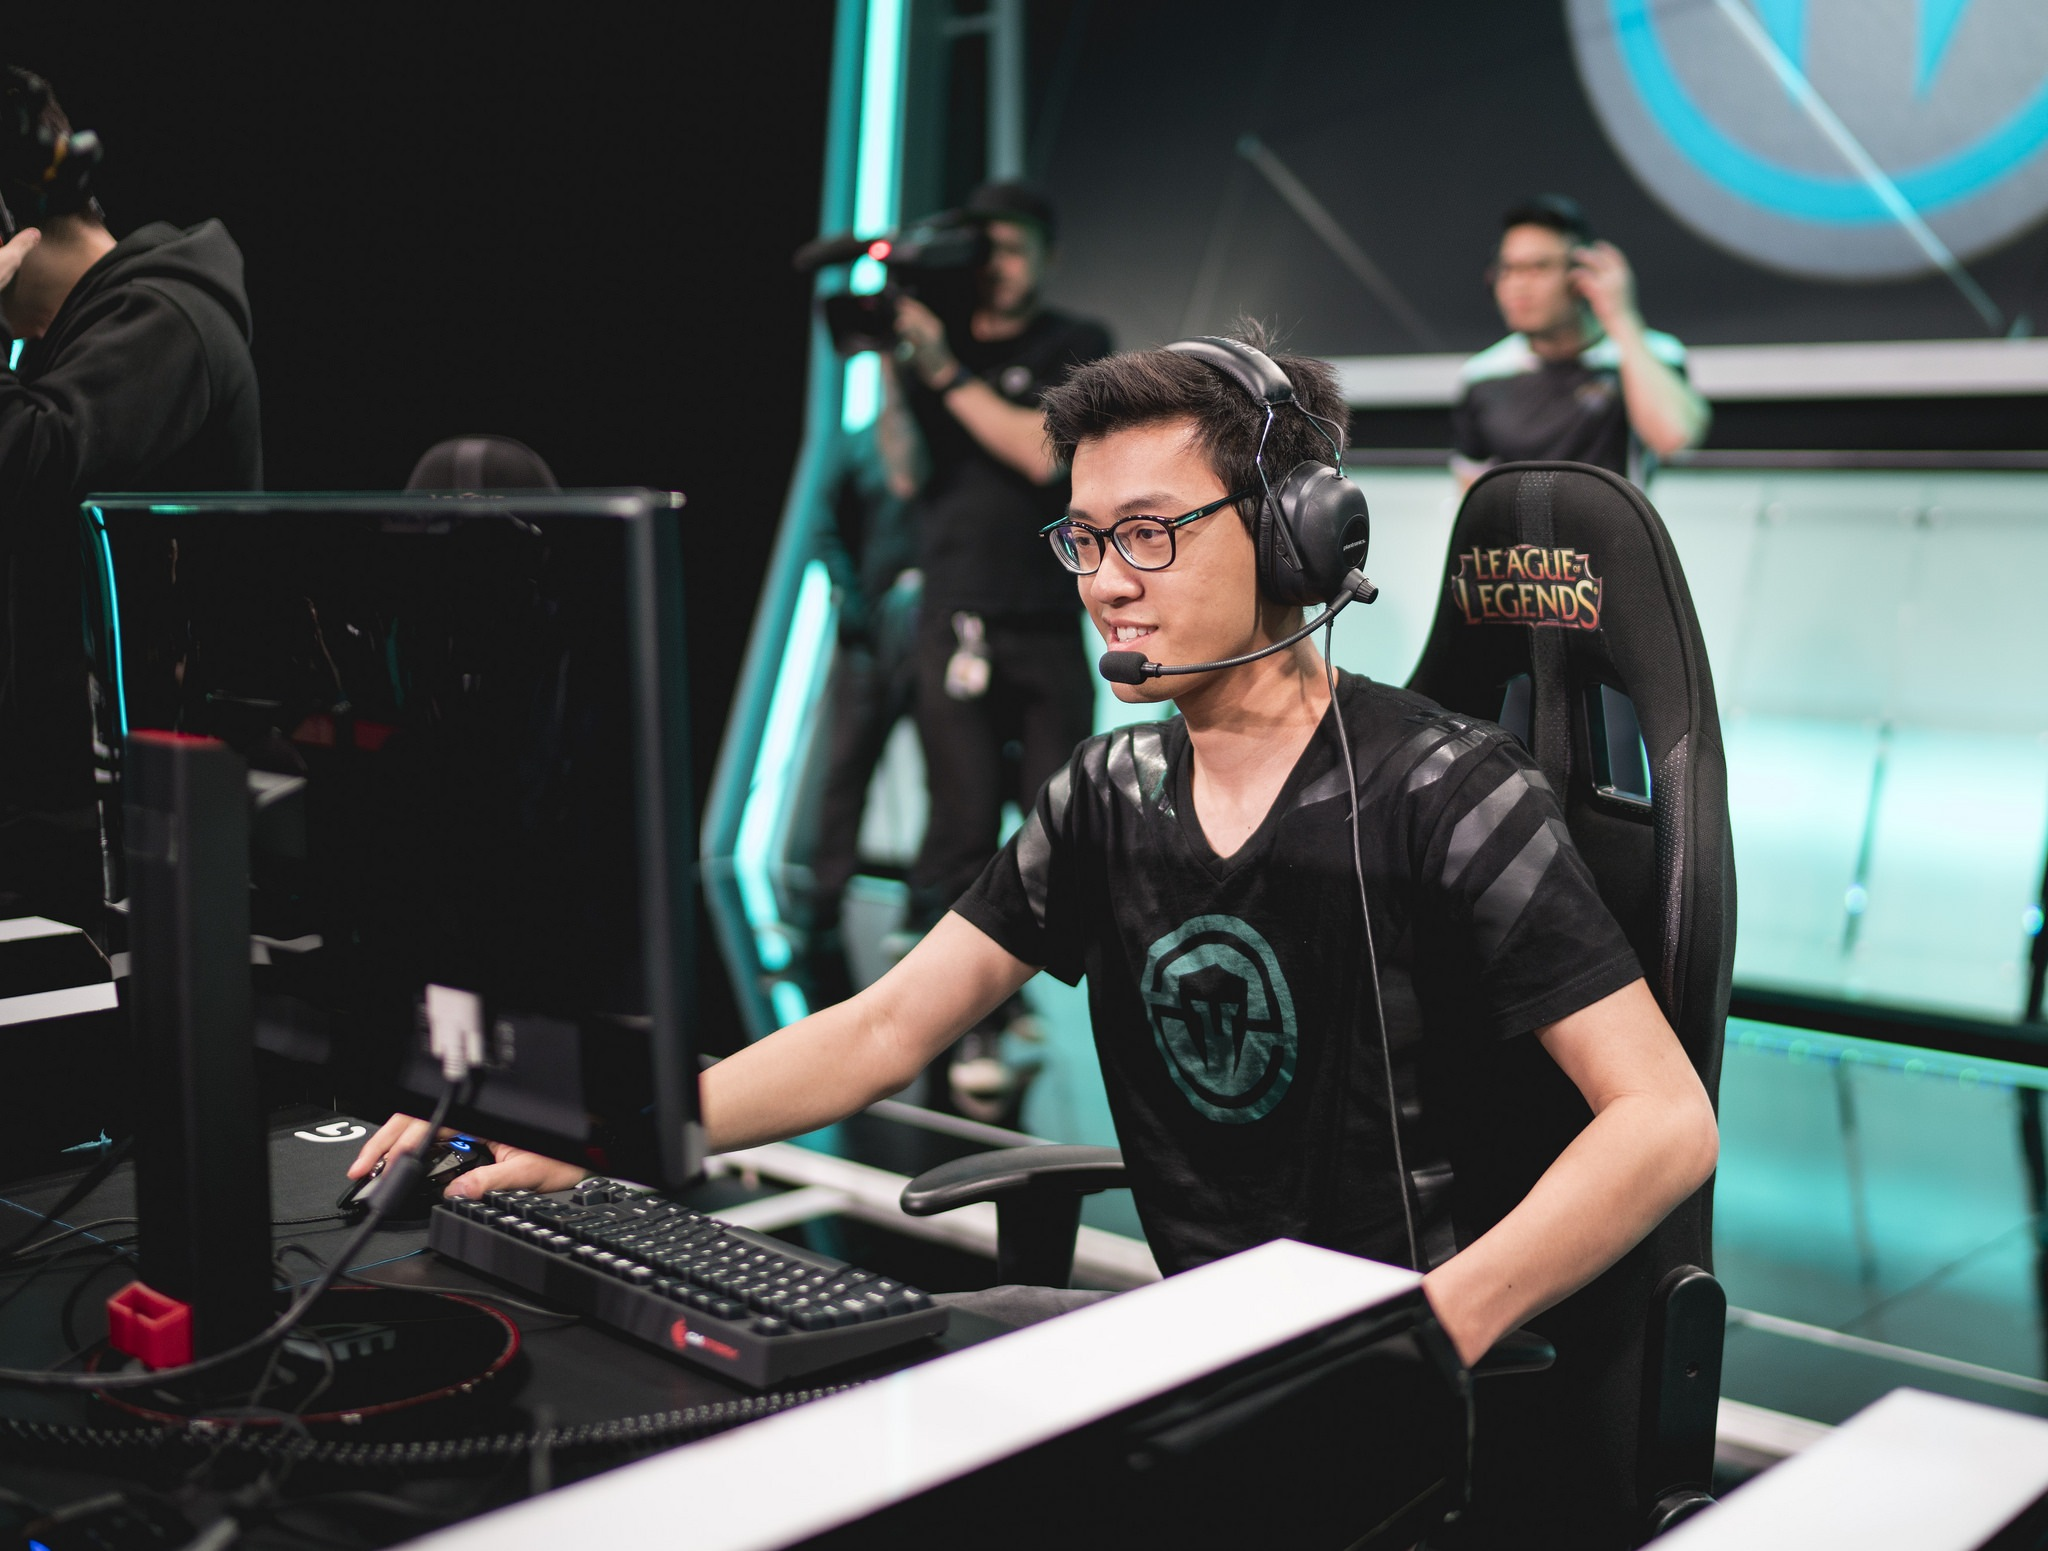 WildTurtle to Substitute for TSM at IEM Oakland